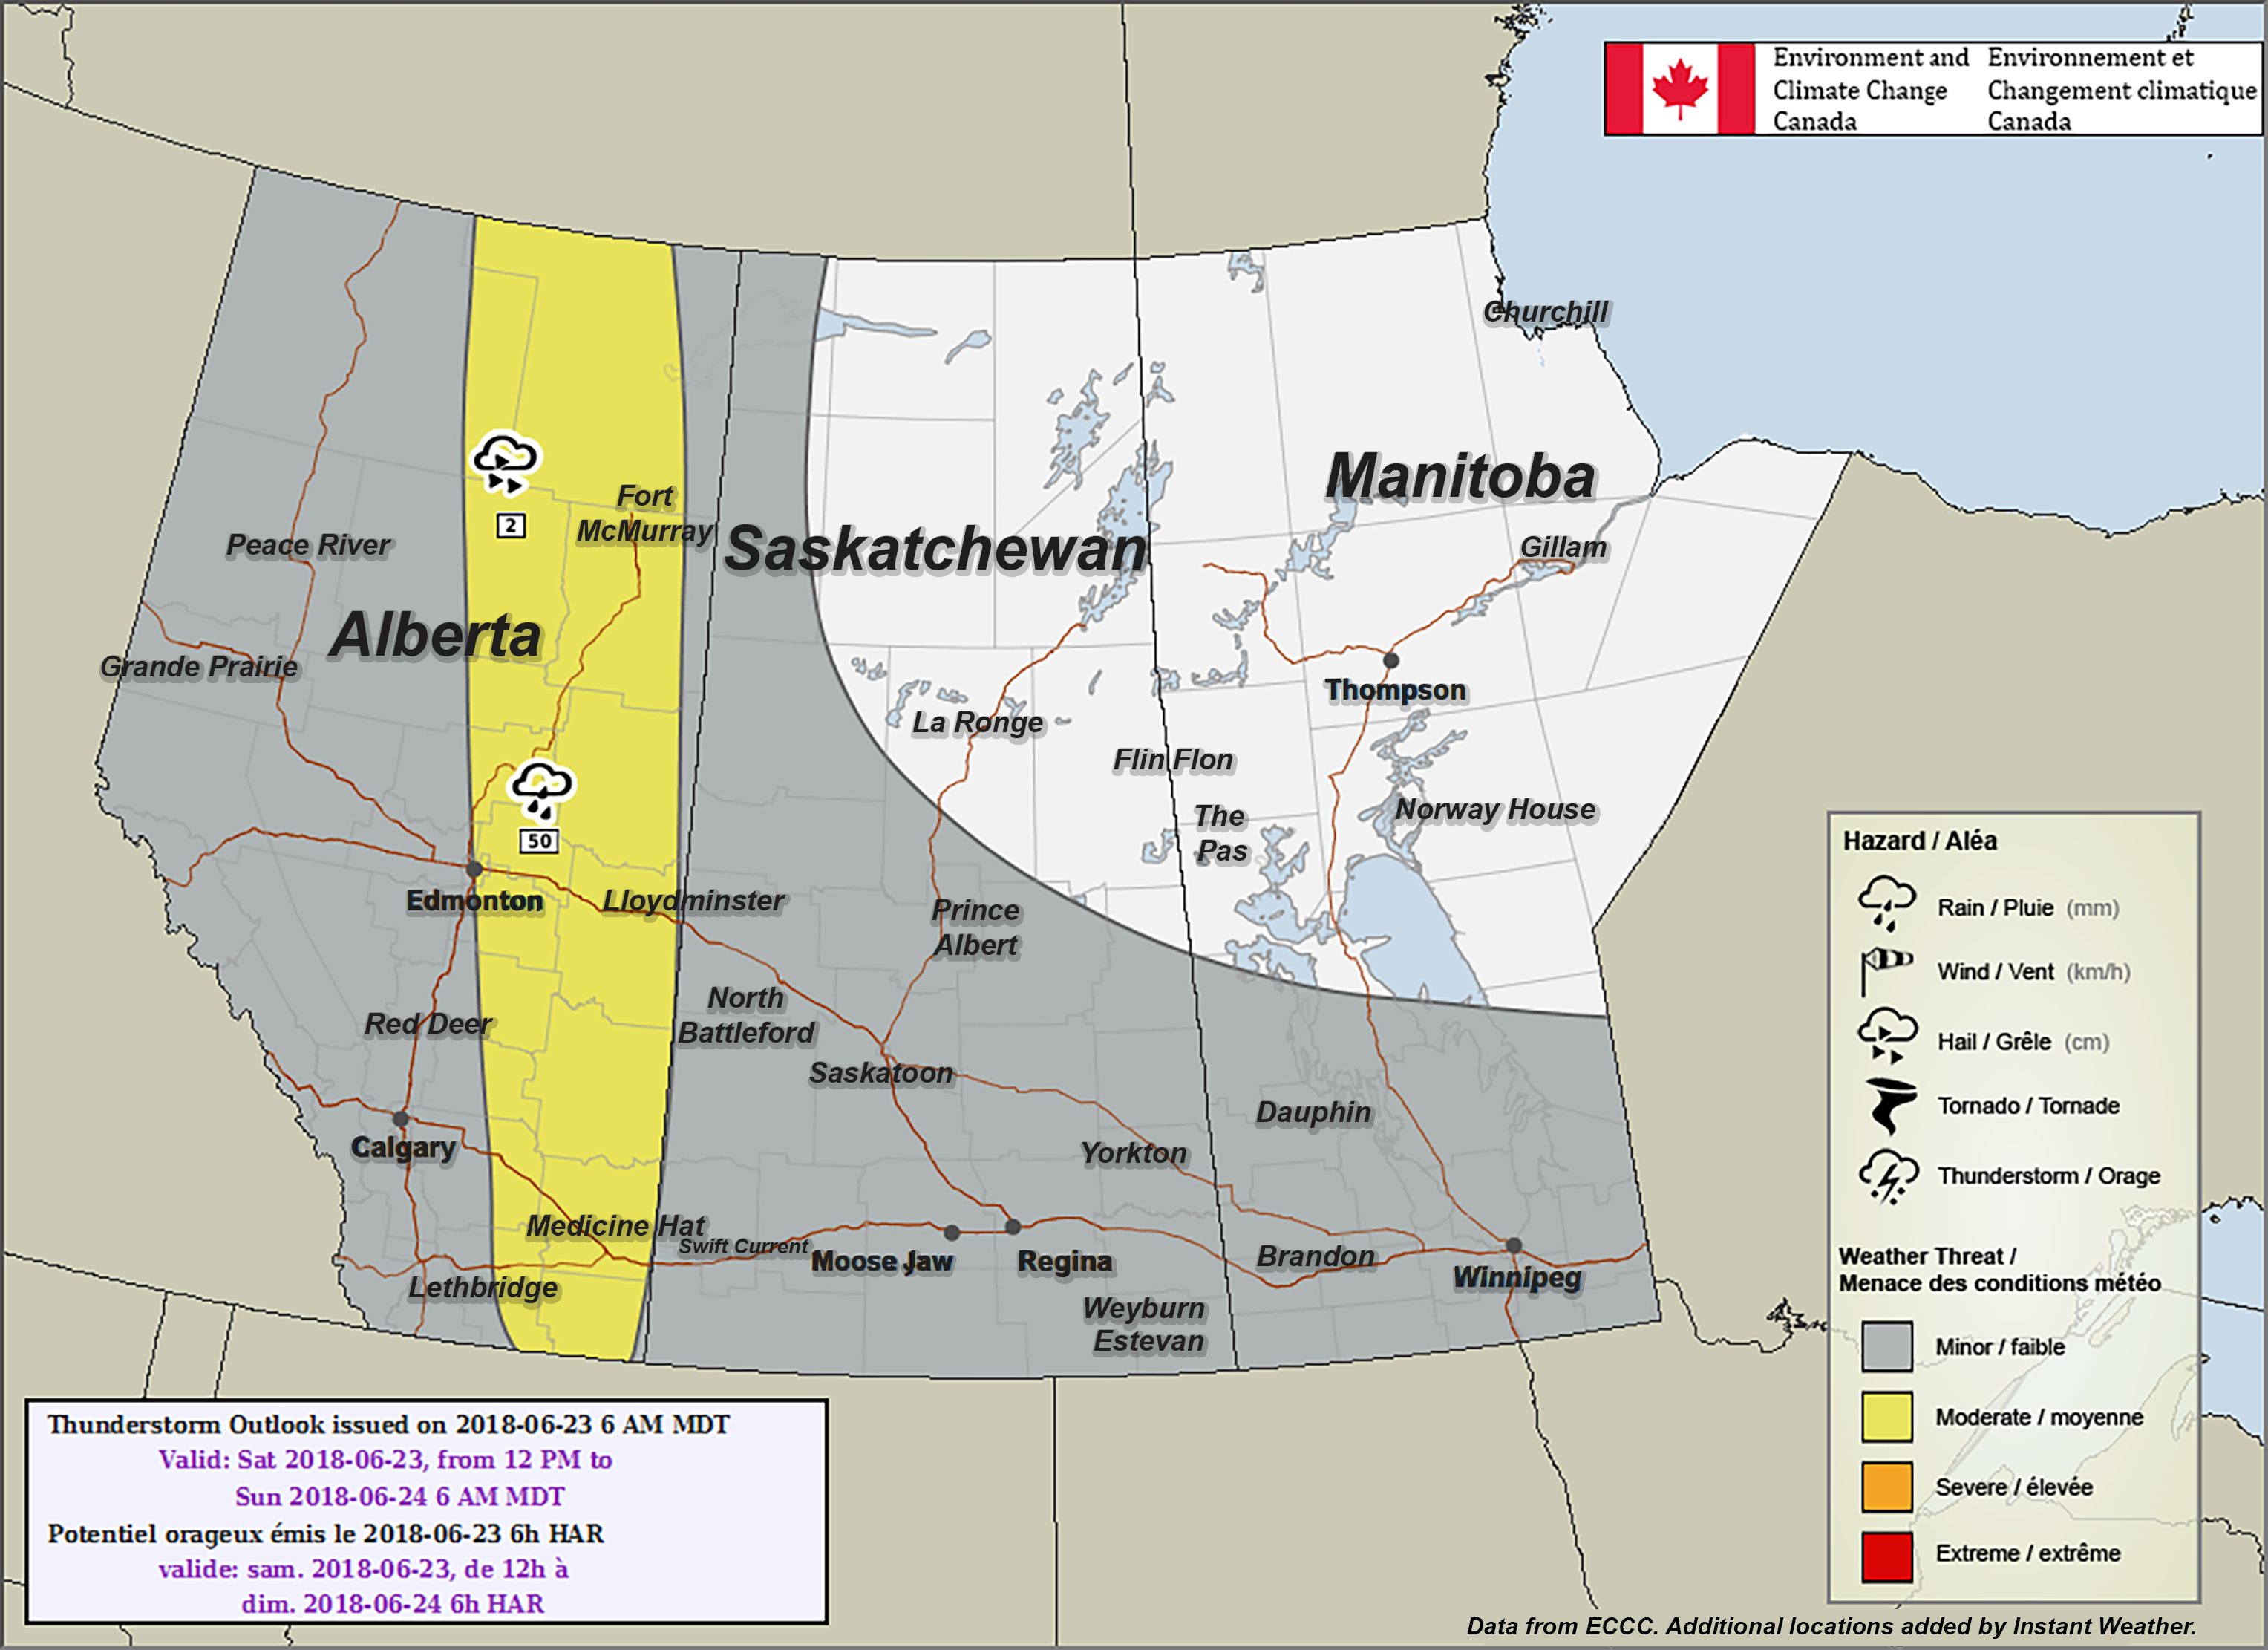 Map Medicine Hat Alberta Canada Edmonton, Medicine Hat & Fort McMurray Included in Environment